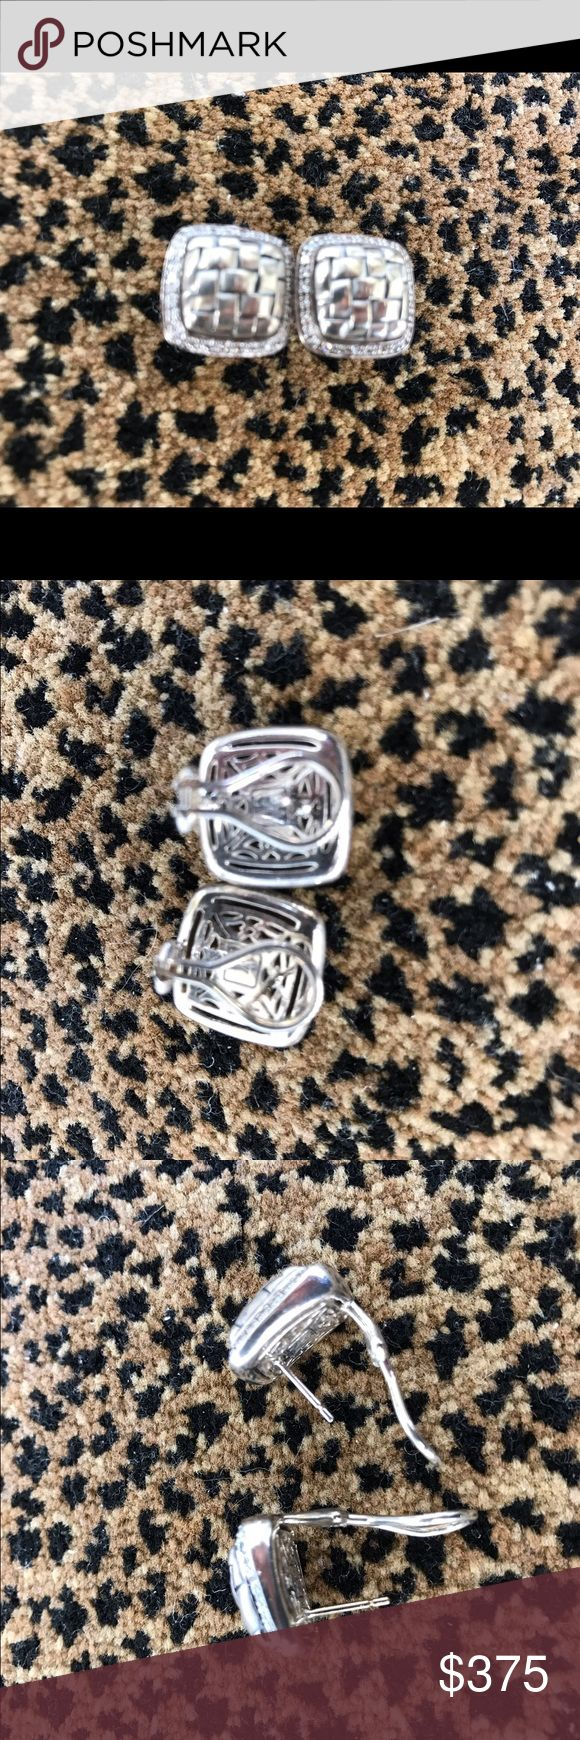 Scott Kay diamond earrings Scott Kay diamond and sterling silver earrings. Pace diamond total weight .56. Post back. Excellent preowned condition worn once in designer pouch scott kay Jewelry Earrings